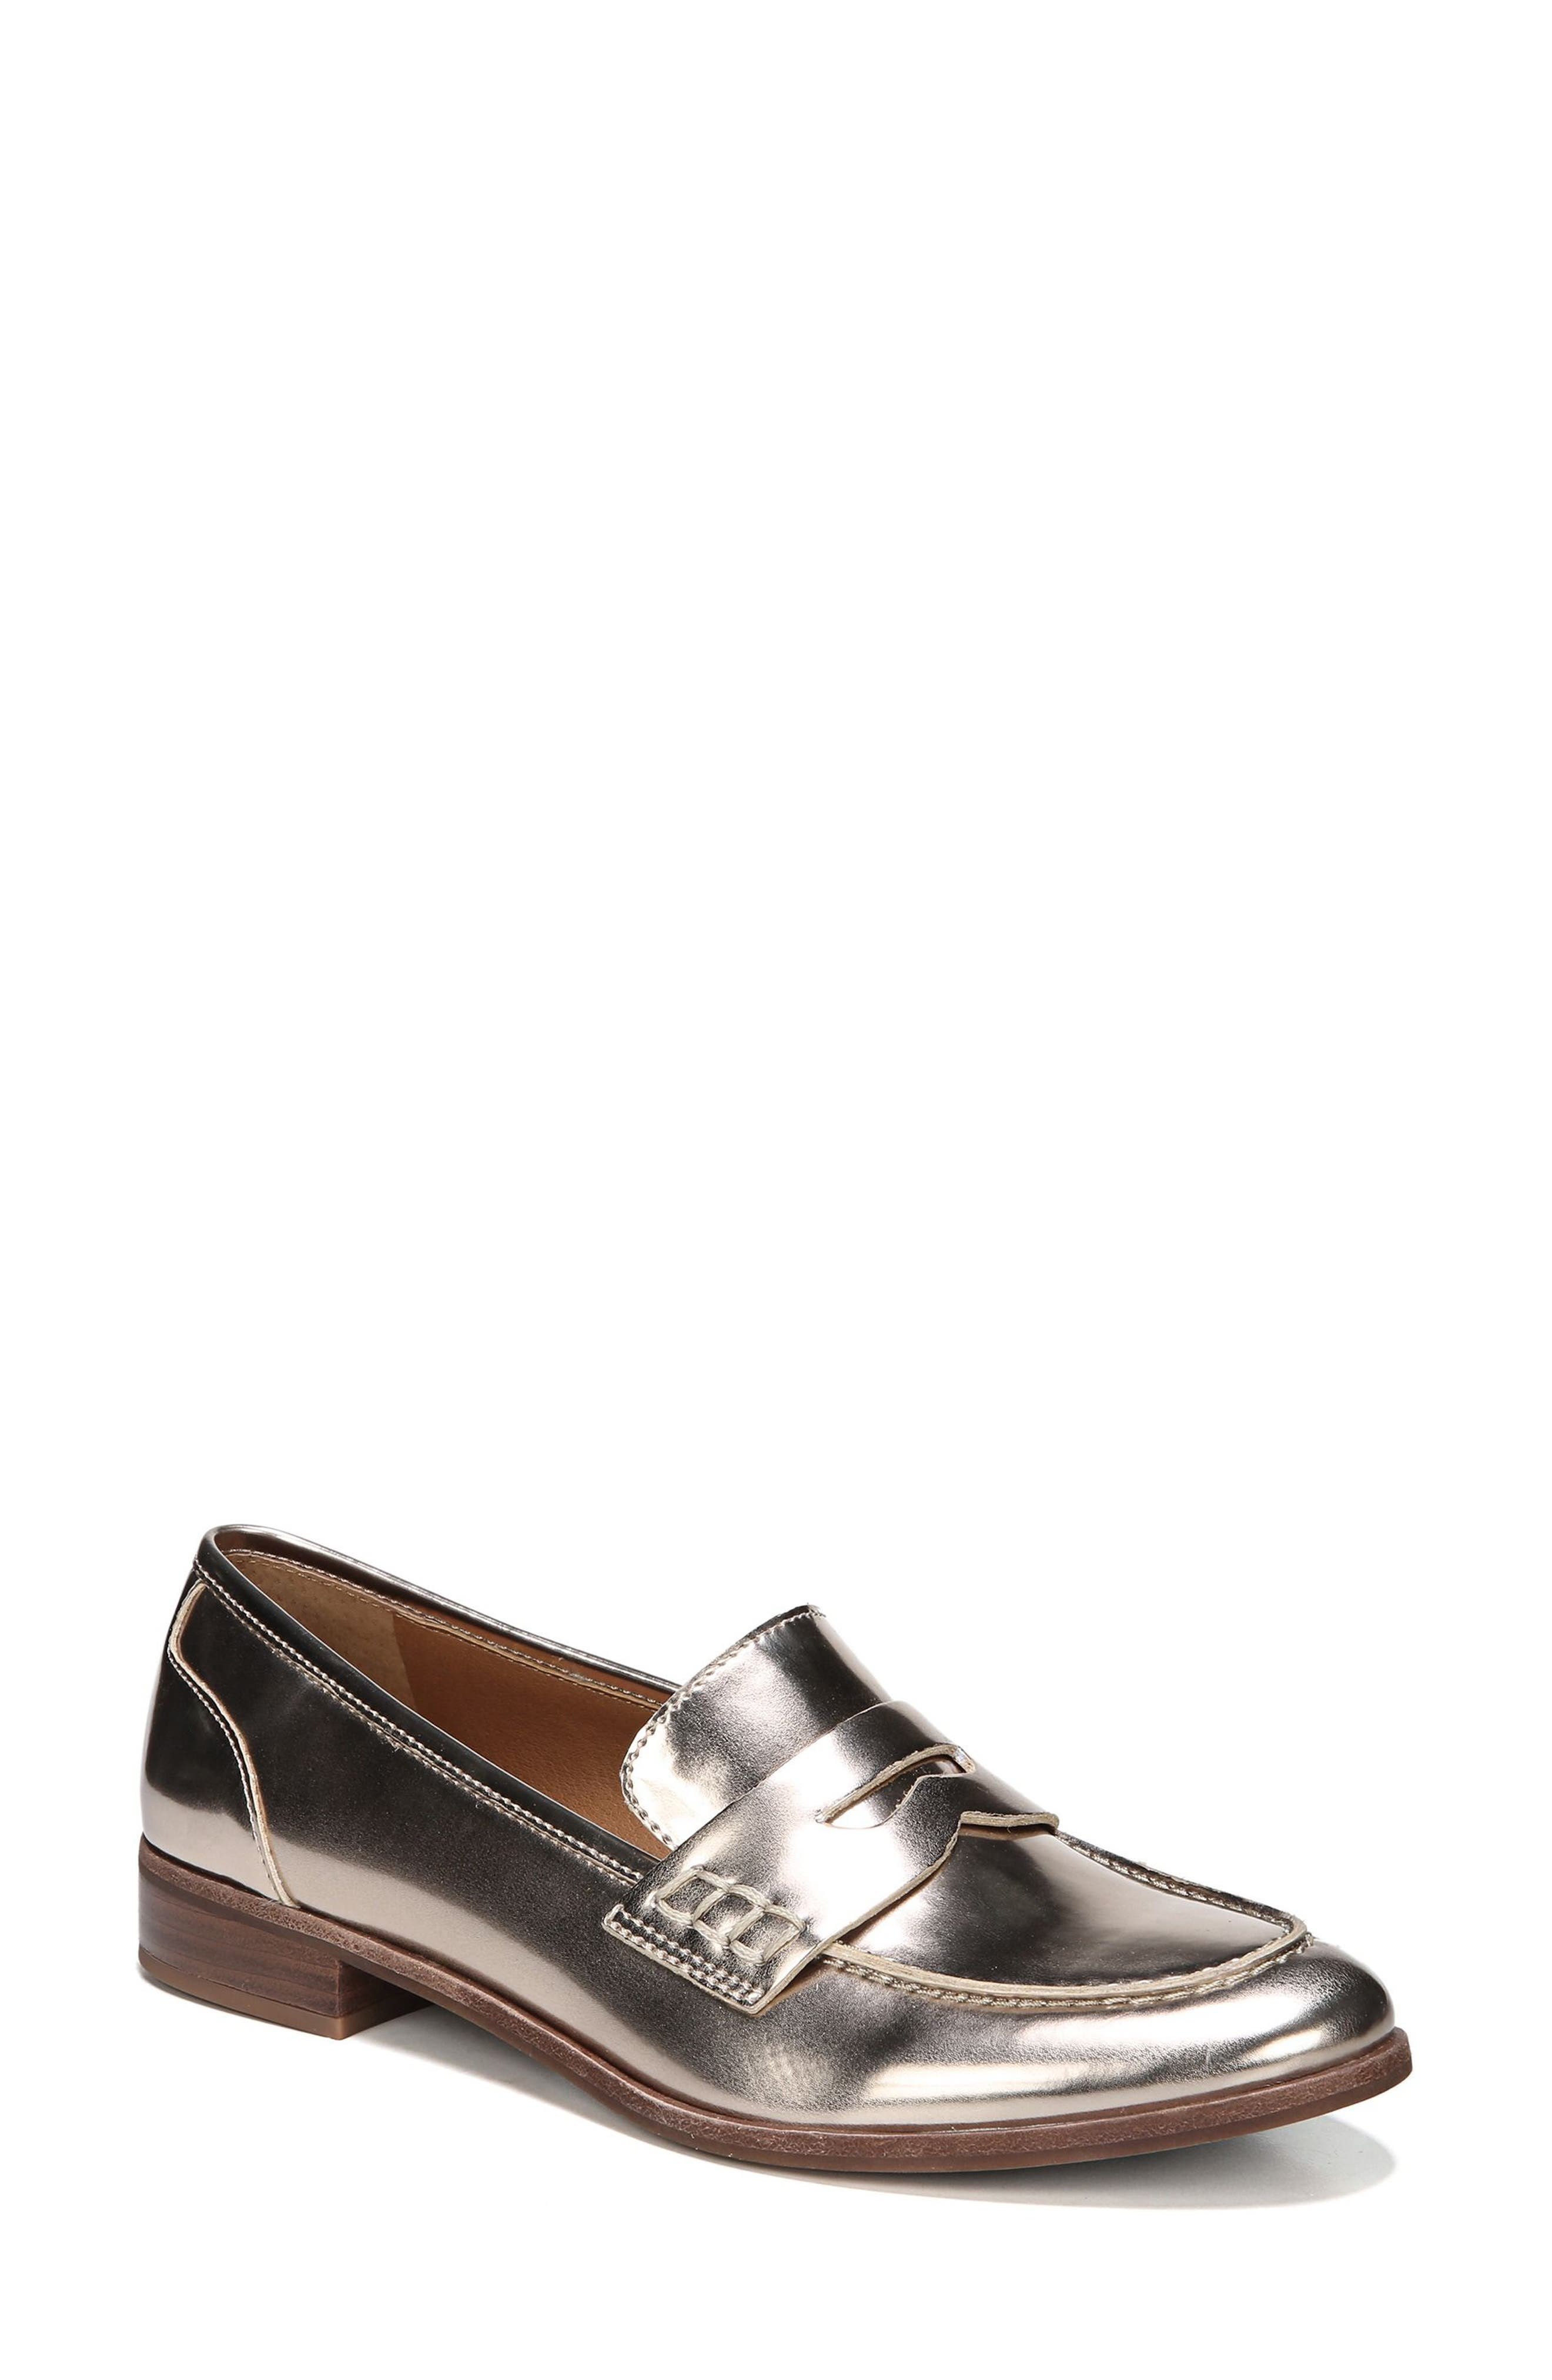 'Jolette' Penny Loafer,                             Main thumbnail 4, color,